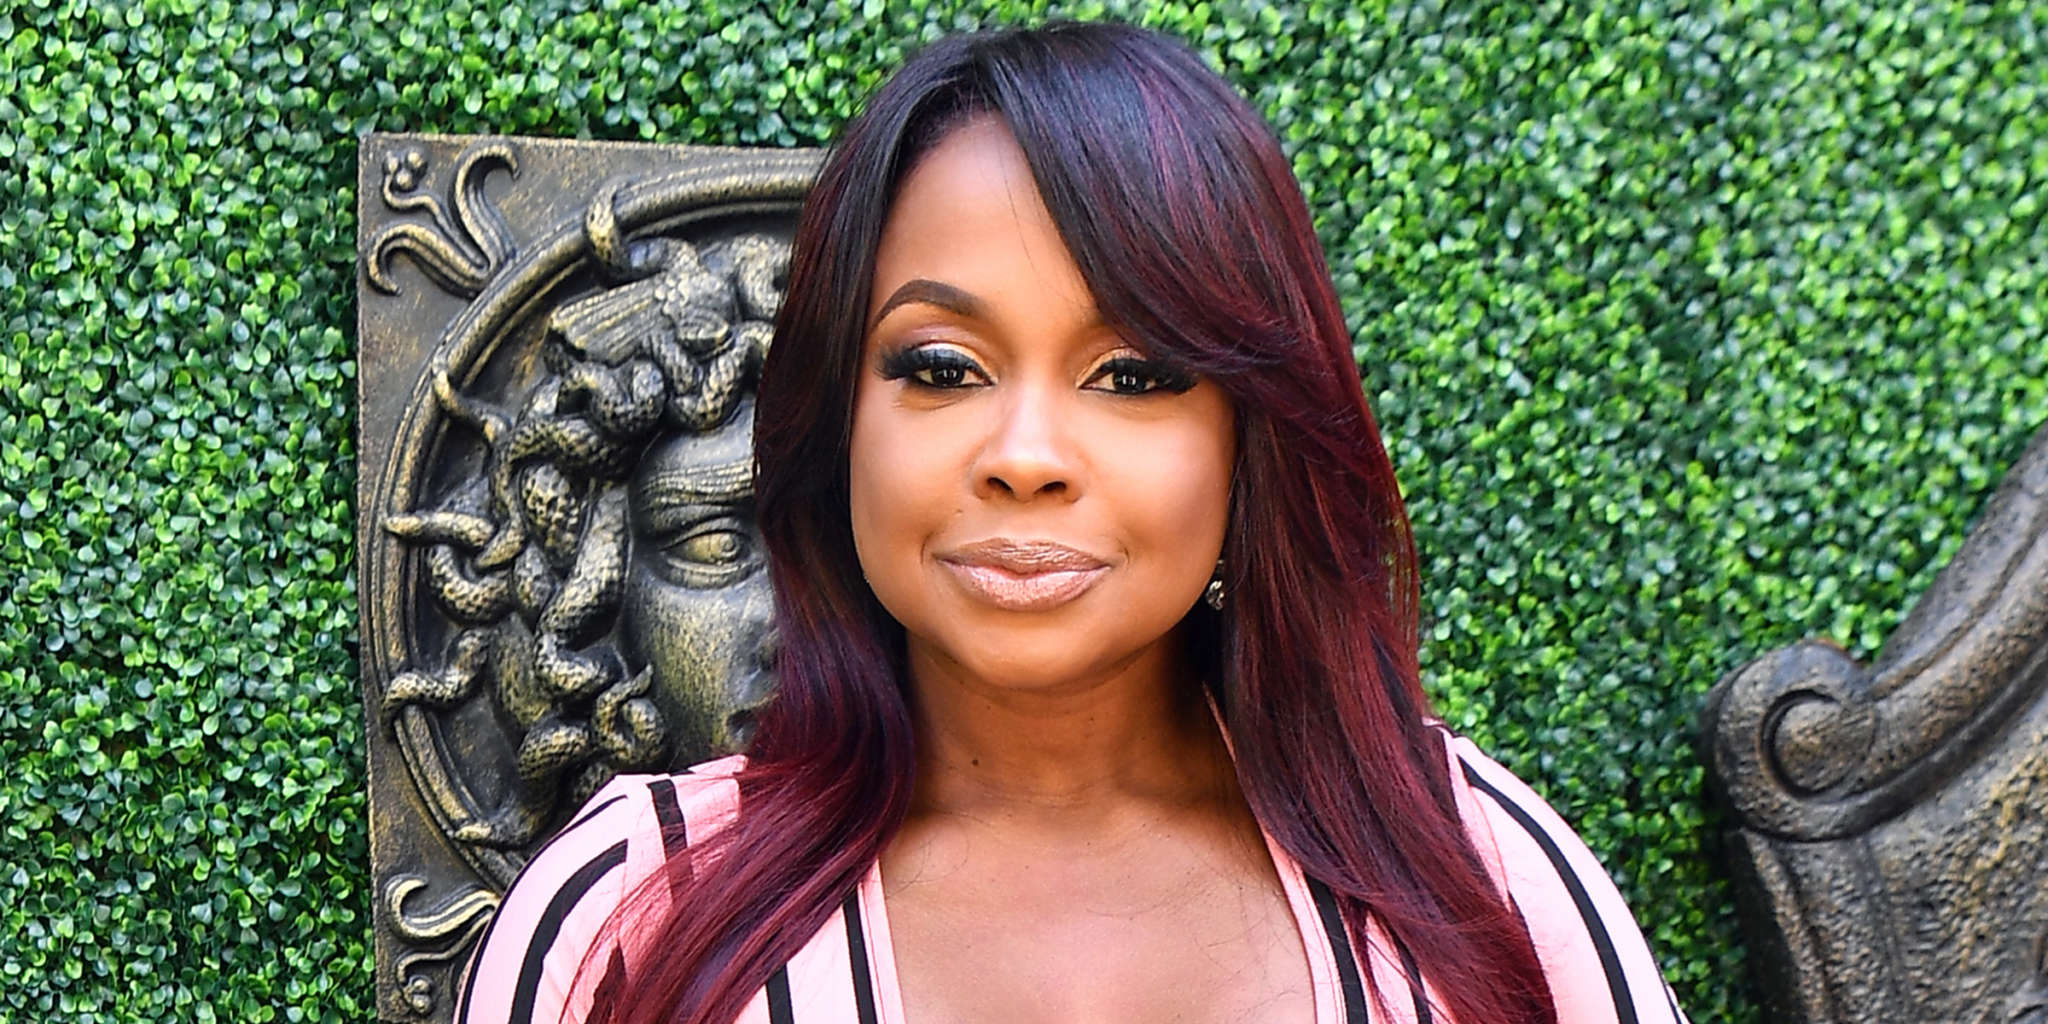 Phaedra Parks Shared A Photo With Her Sons And Fans' Hearts Are Melting